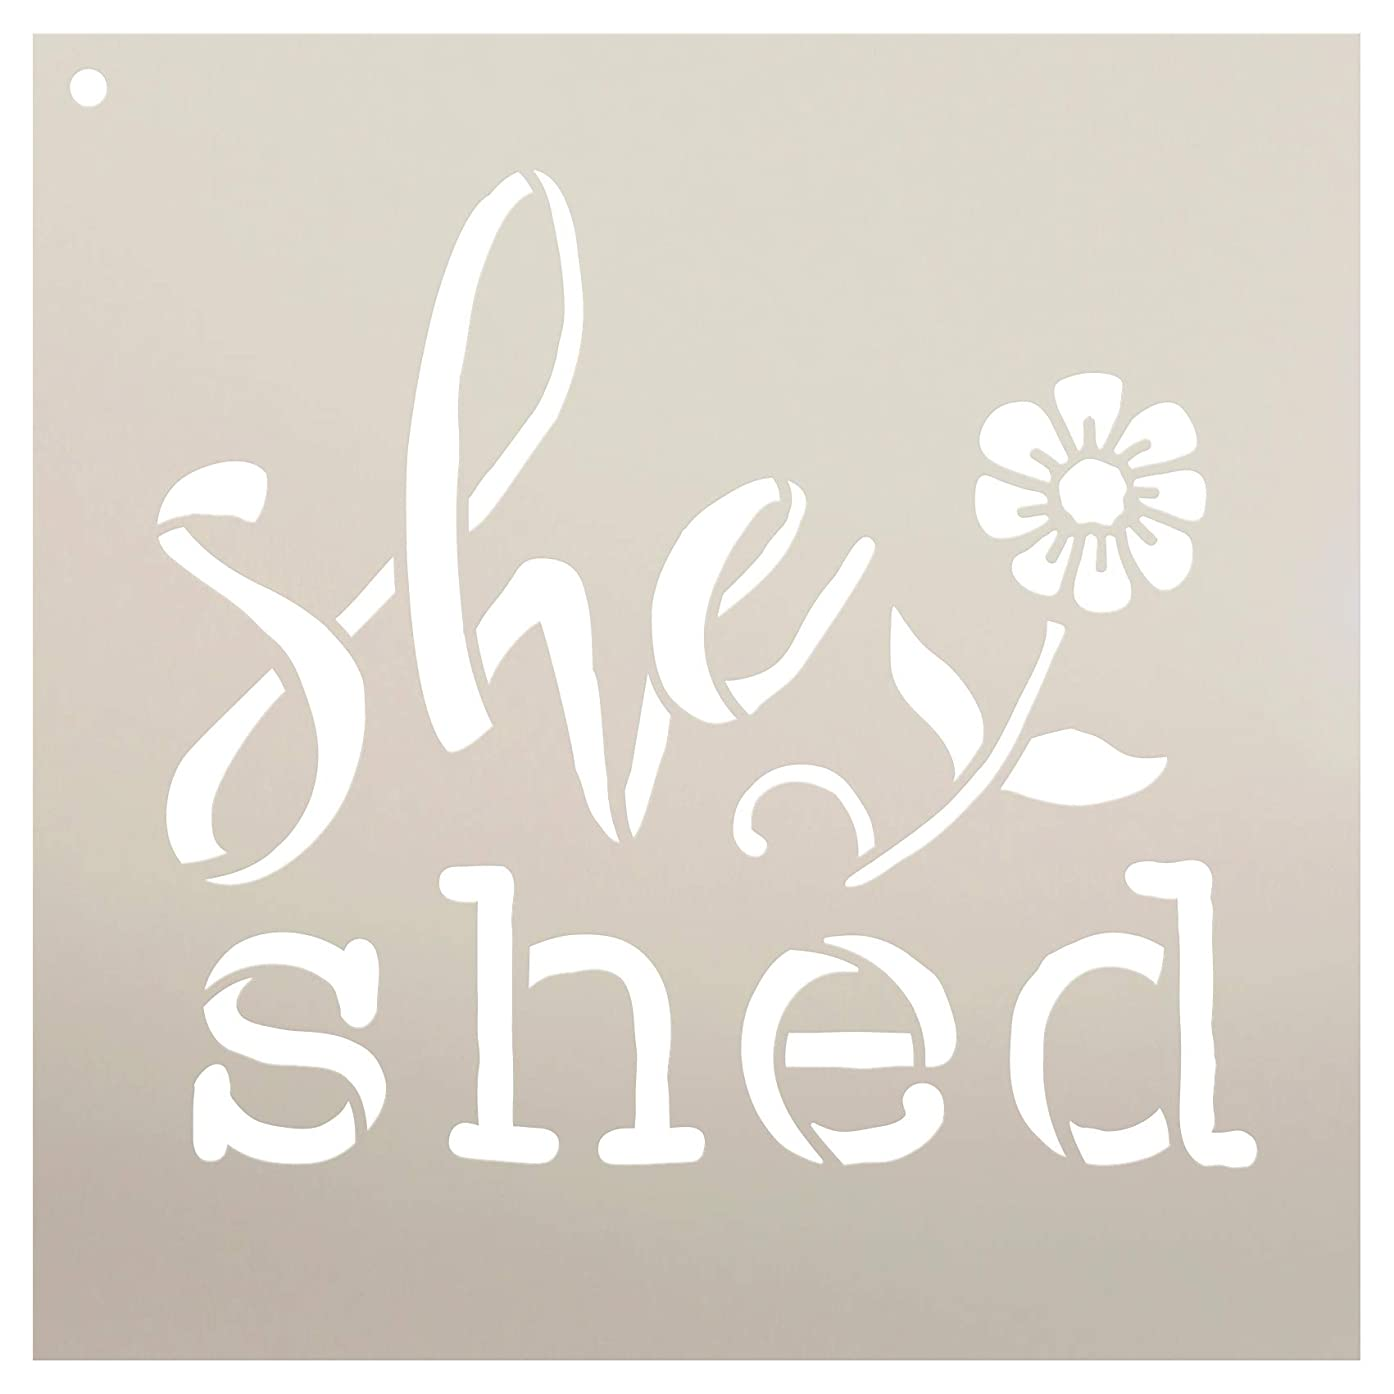 She Shed with Flower Stencil by StudioR12 | Reusable Mylar Template | Use to Paint Wood Signs - Pallets - Pillows - Apron - DIY Gardening Decor - Select Size (9